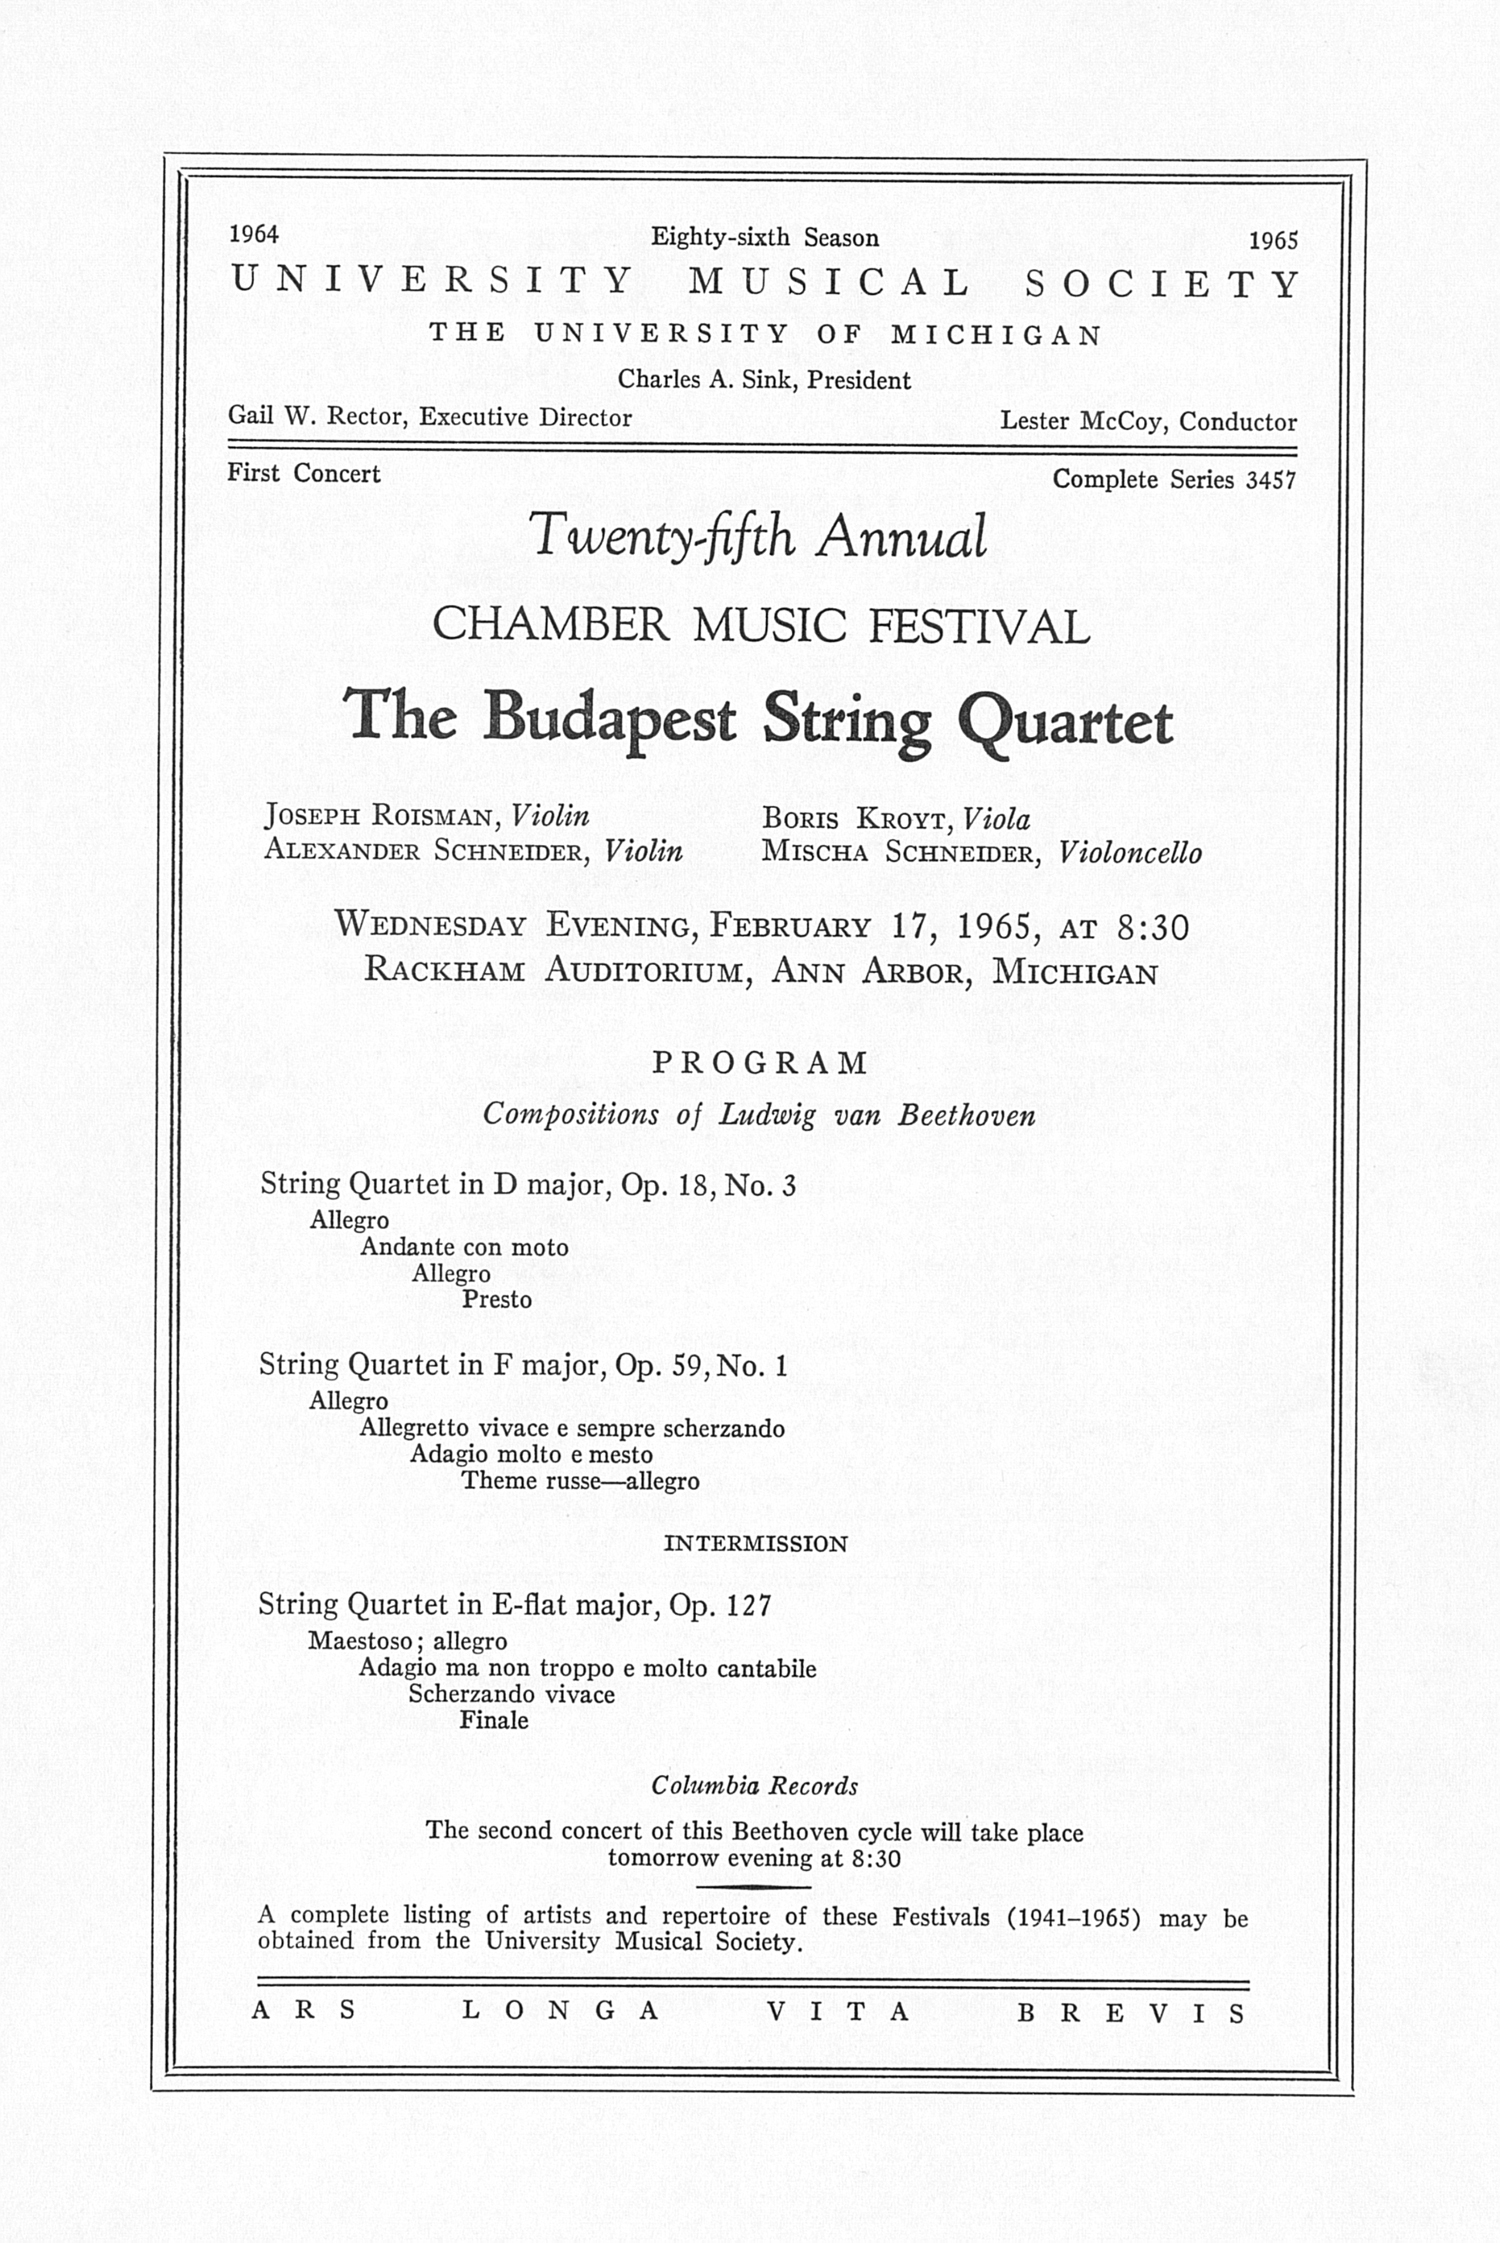 UMS Concert Program, February 17, 1965: Twenty-fifth Annual Chamber Music Festival -- The Budapest String Quartet image